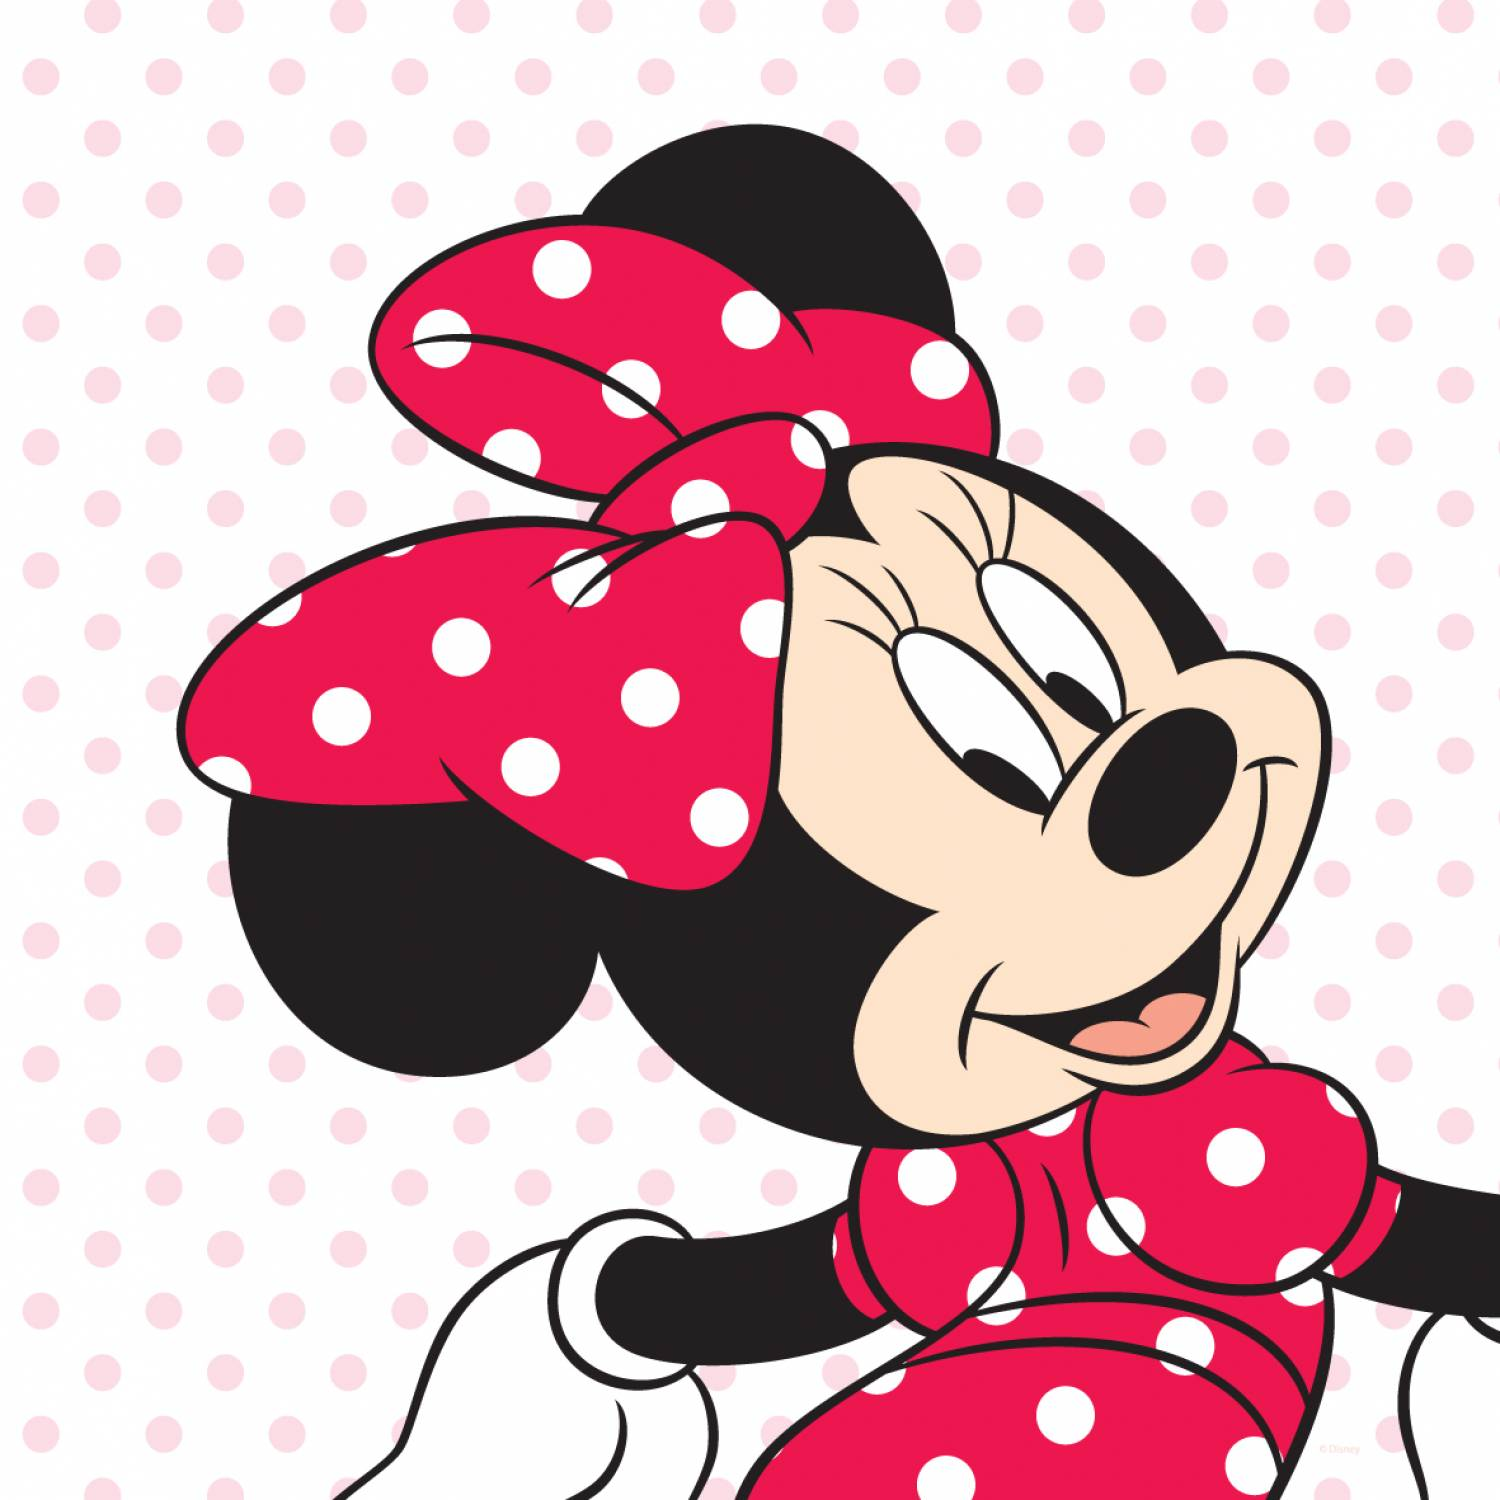 Minnie mouse 1st birthday clipart jpg free Minnie Mouse Birthday Clipart - Clipart Kid jpg free